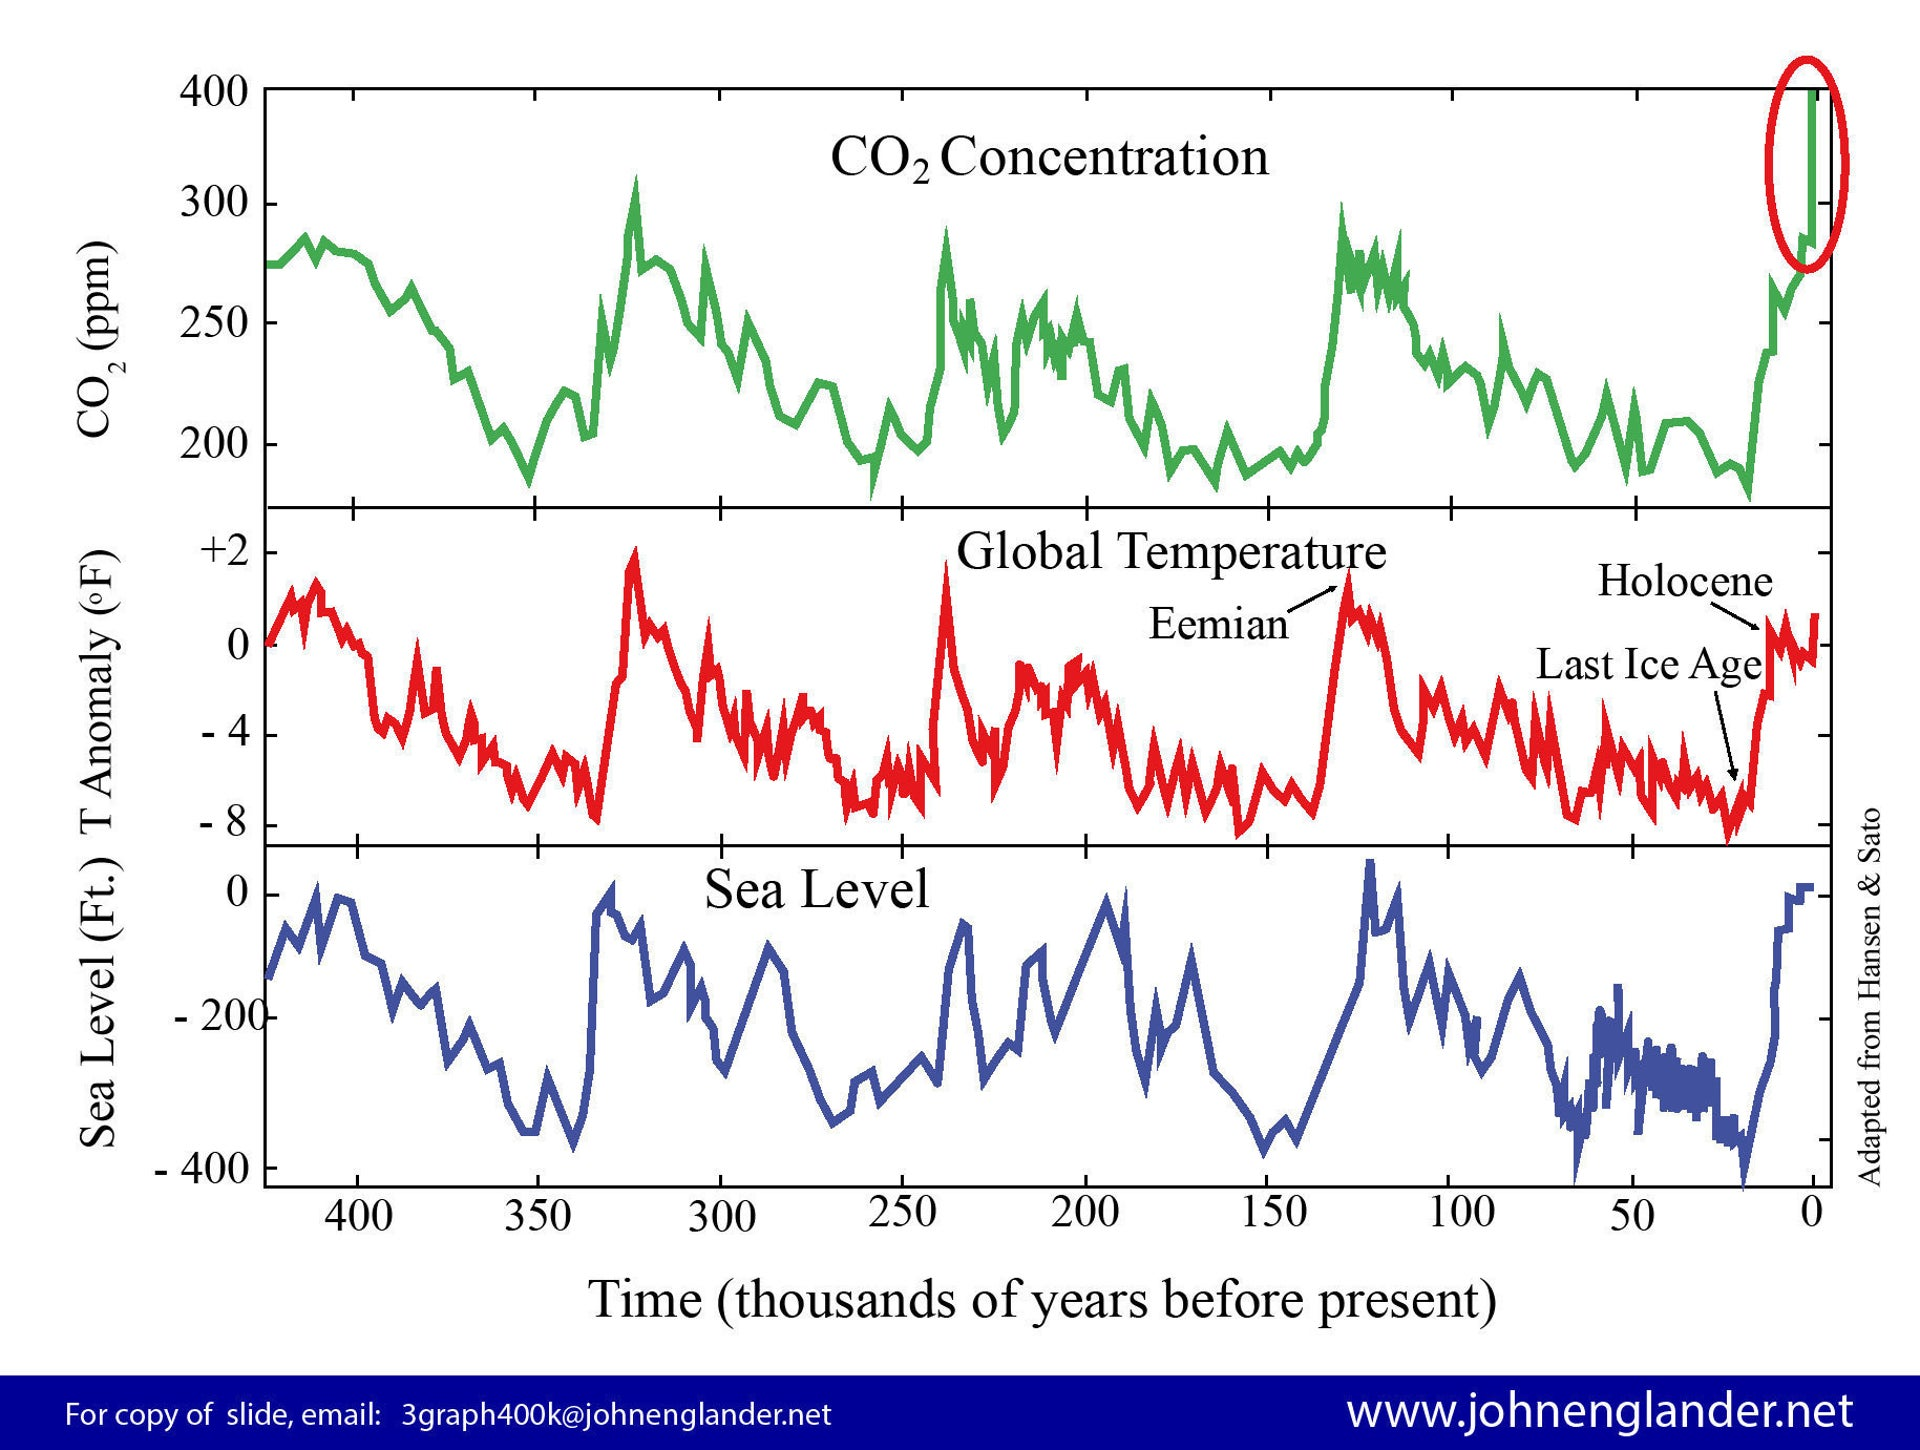 Note the correlation between atmospheric CO2 concentration, global average temperature - and sea level rise